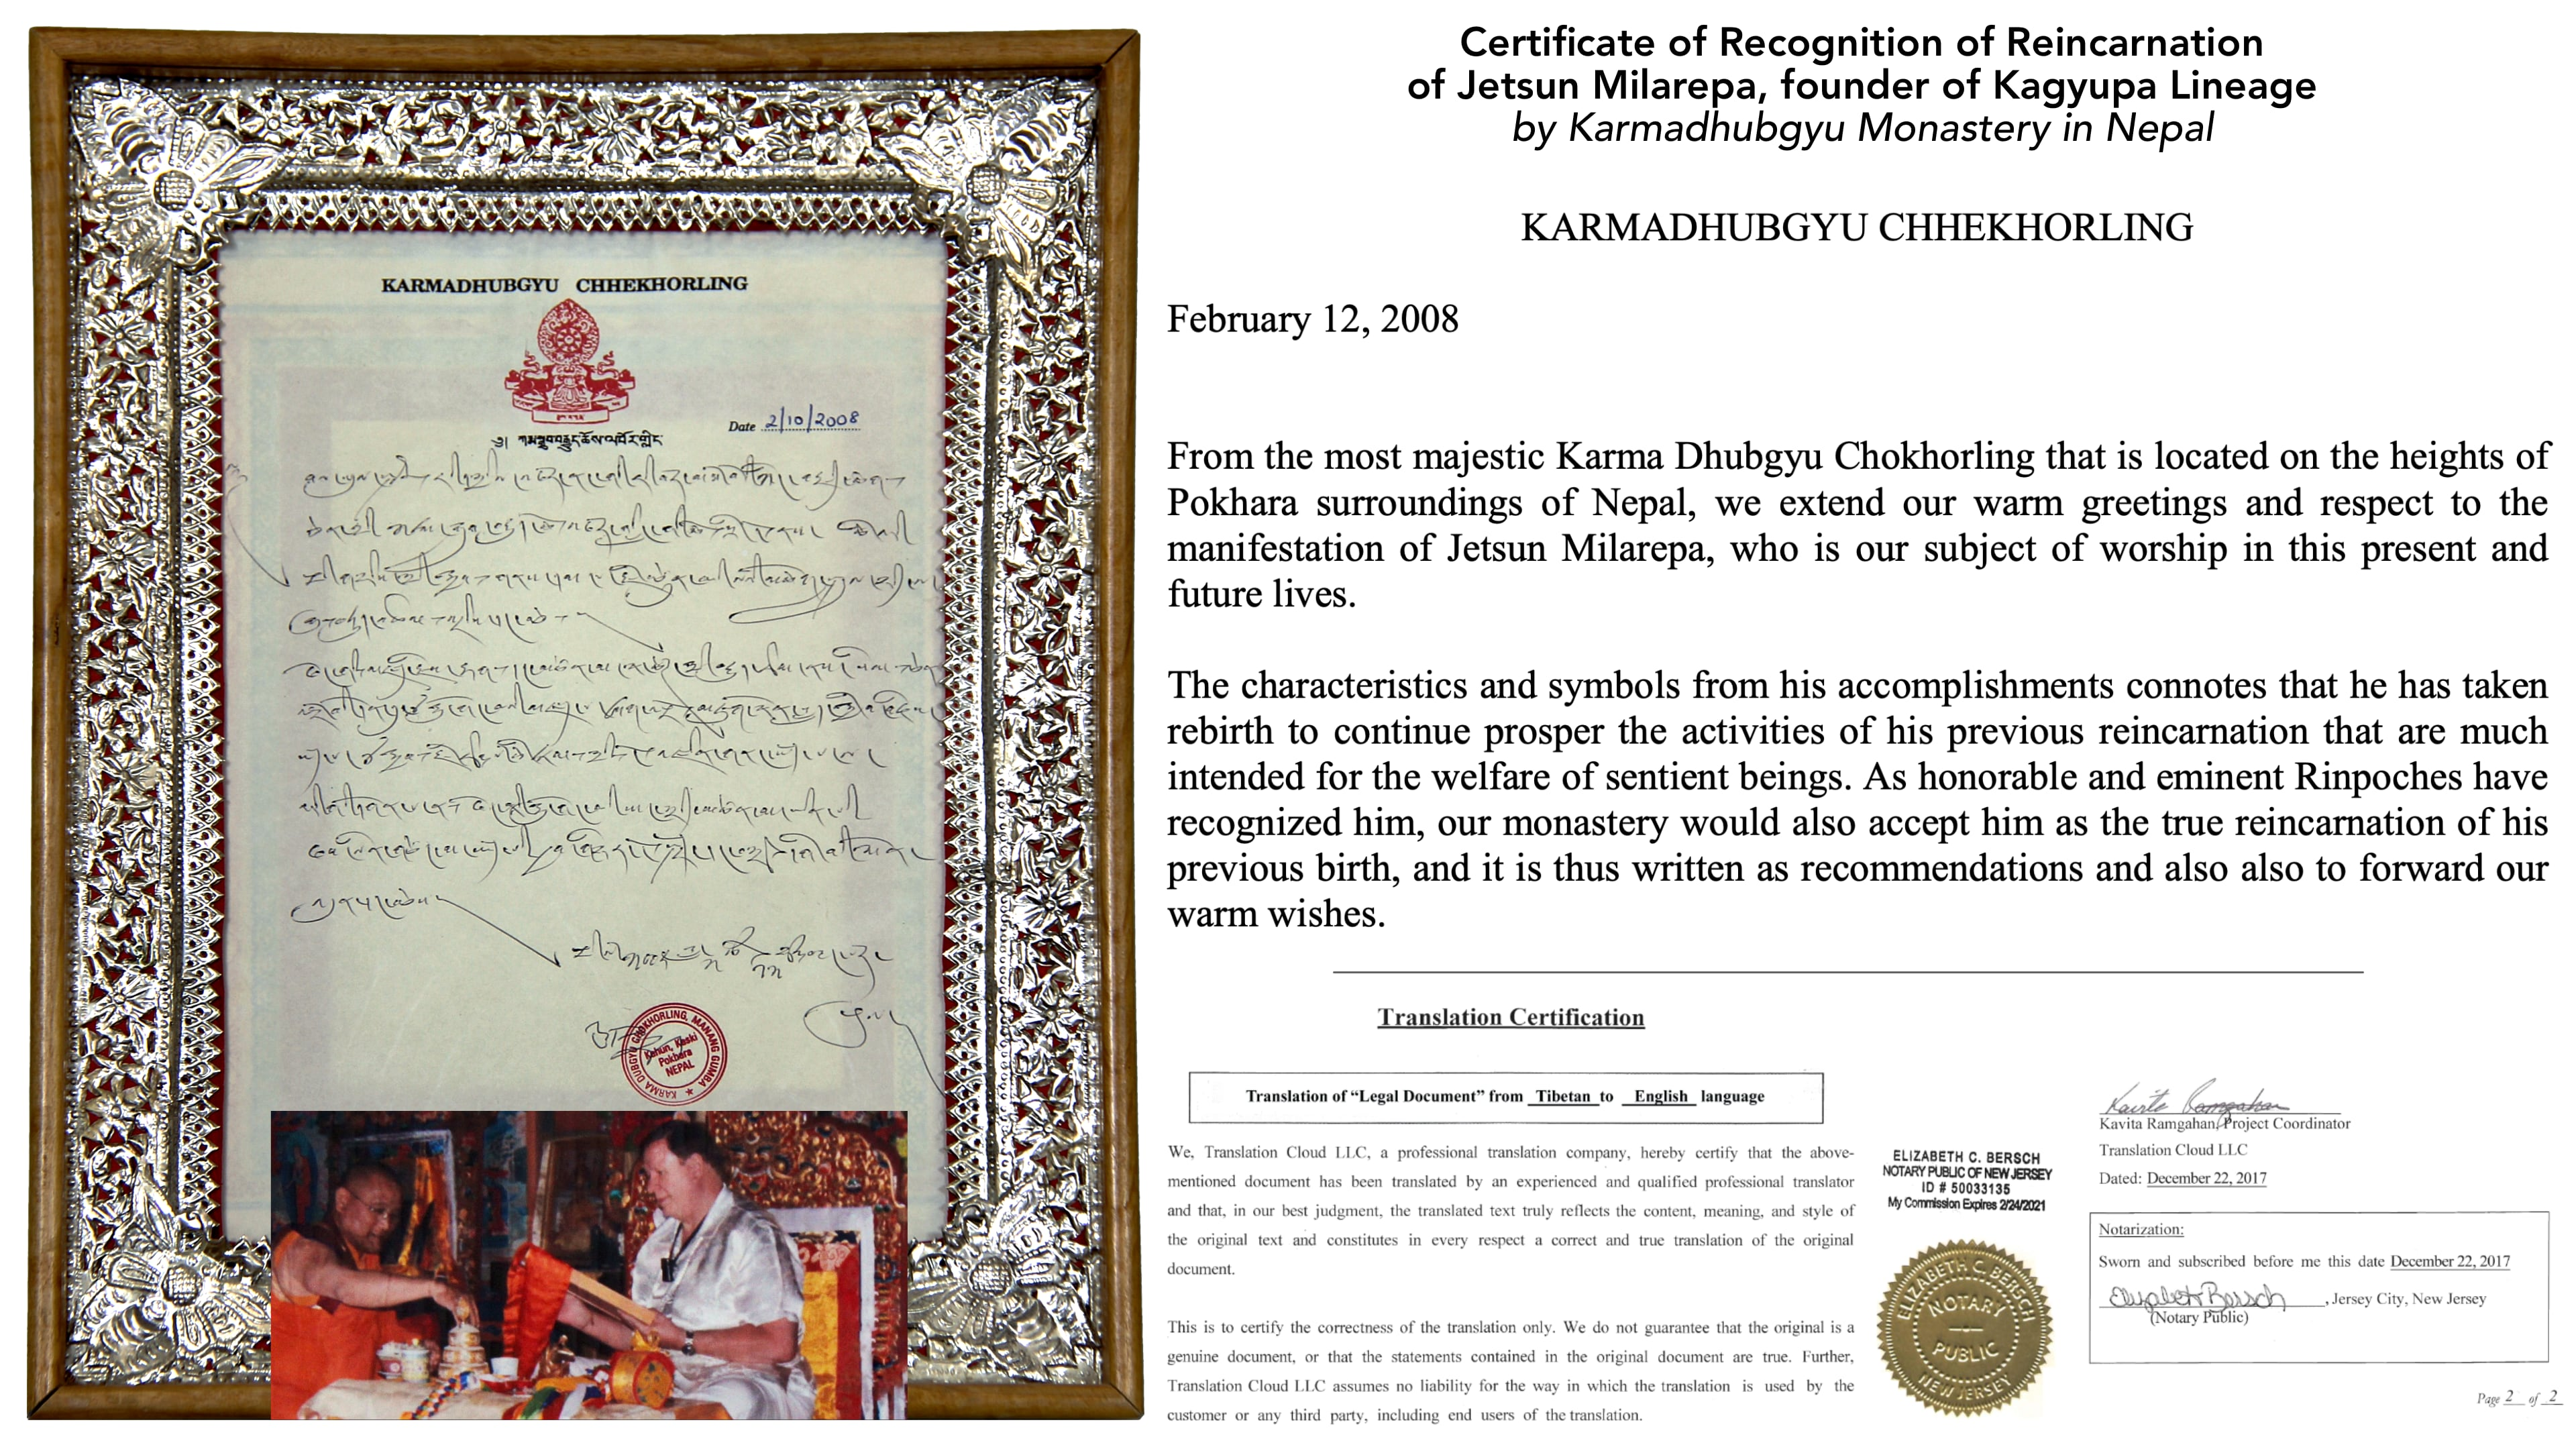 Certificates of Recognition and other activities